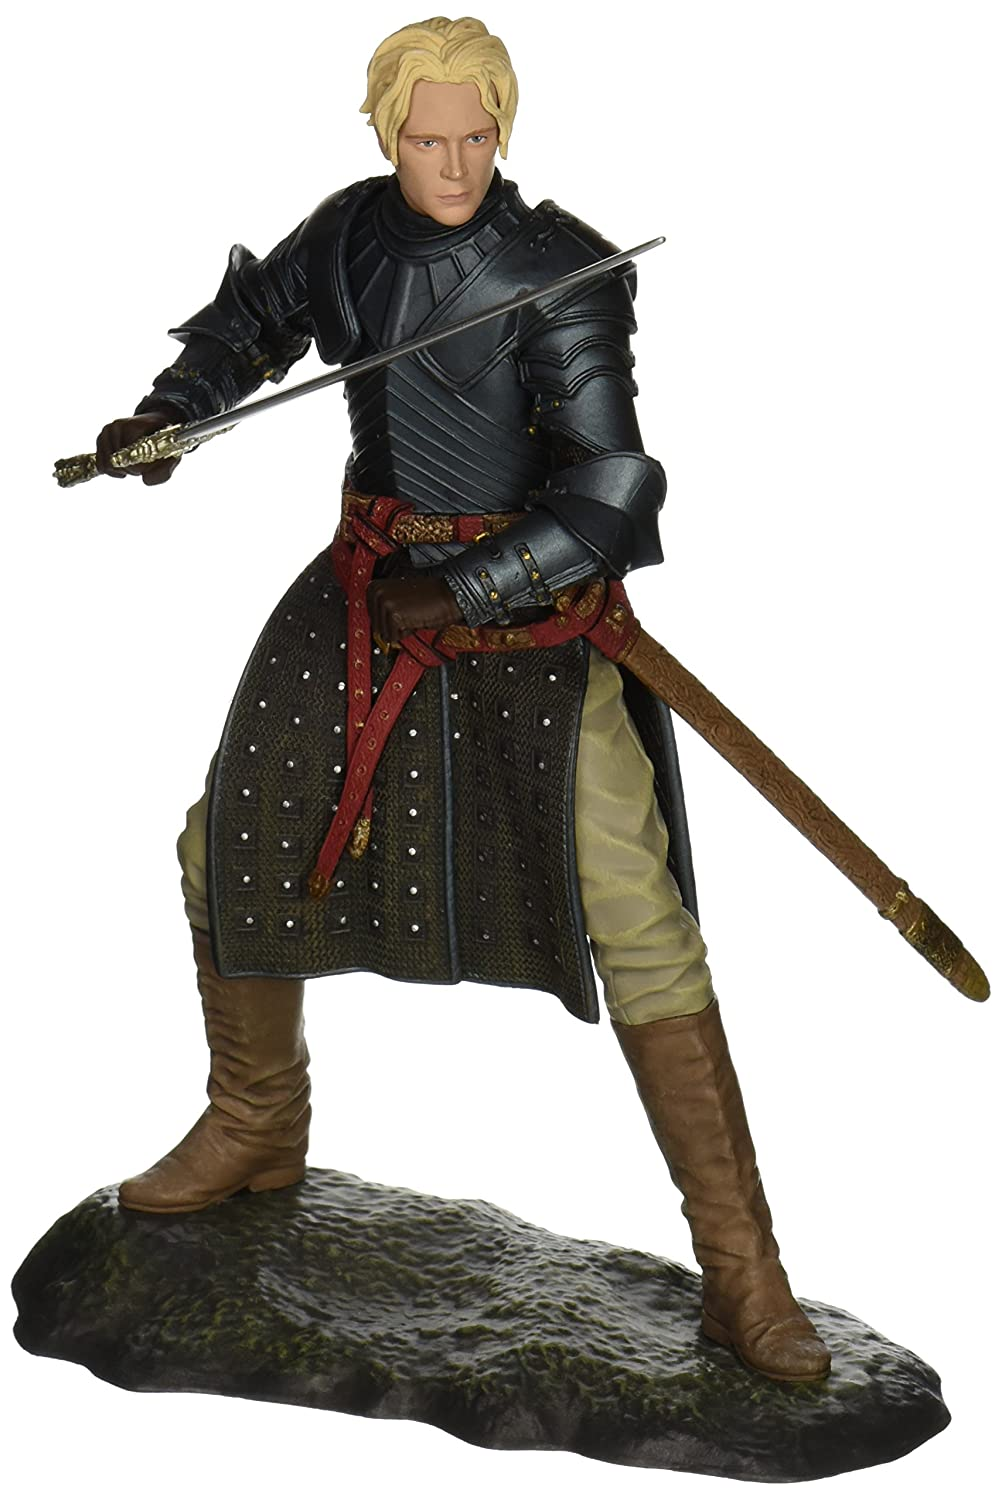 Dark Horse Deluxe APR150081 Game of Thrones Brienne of Tarth Figure Non-Classifiable Novelty Miscellaneous Adult